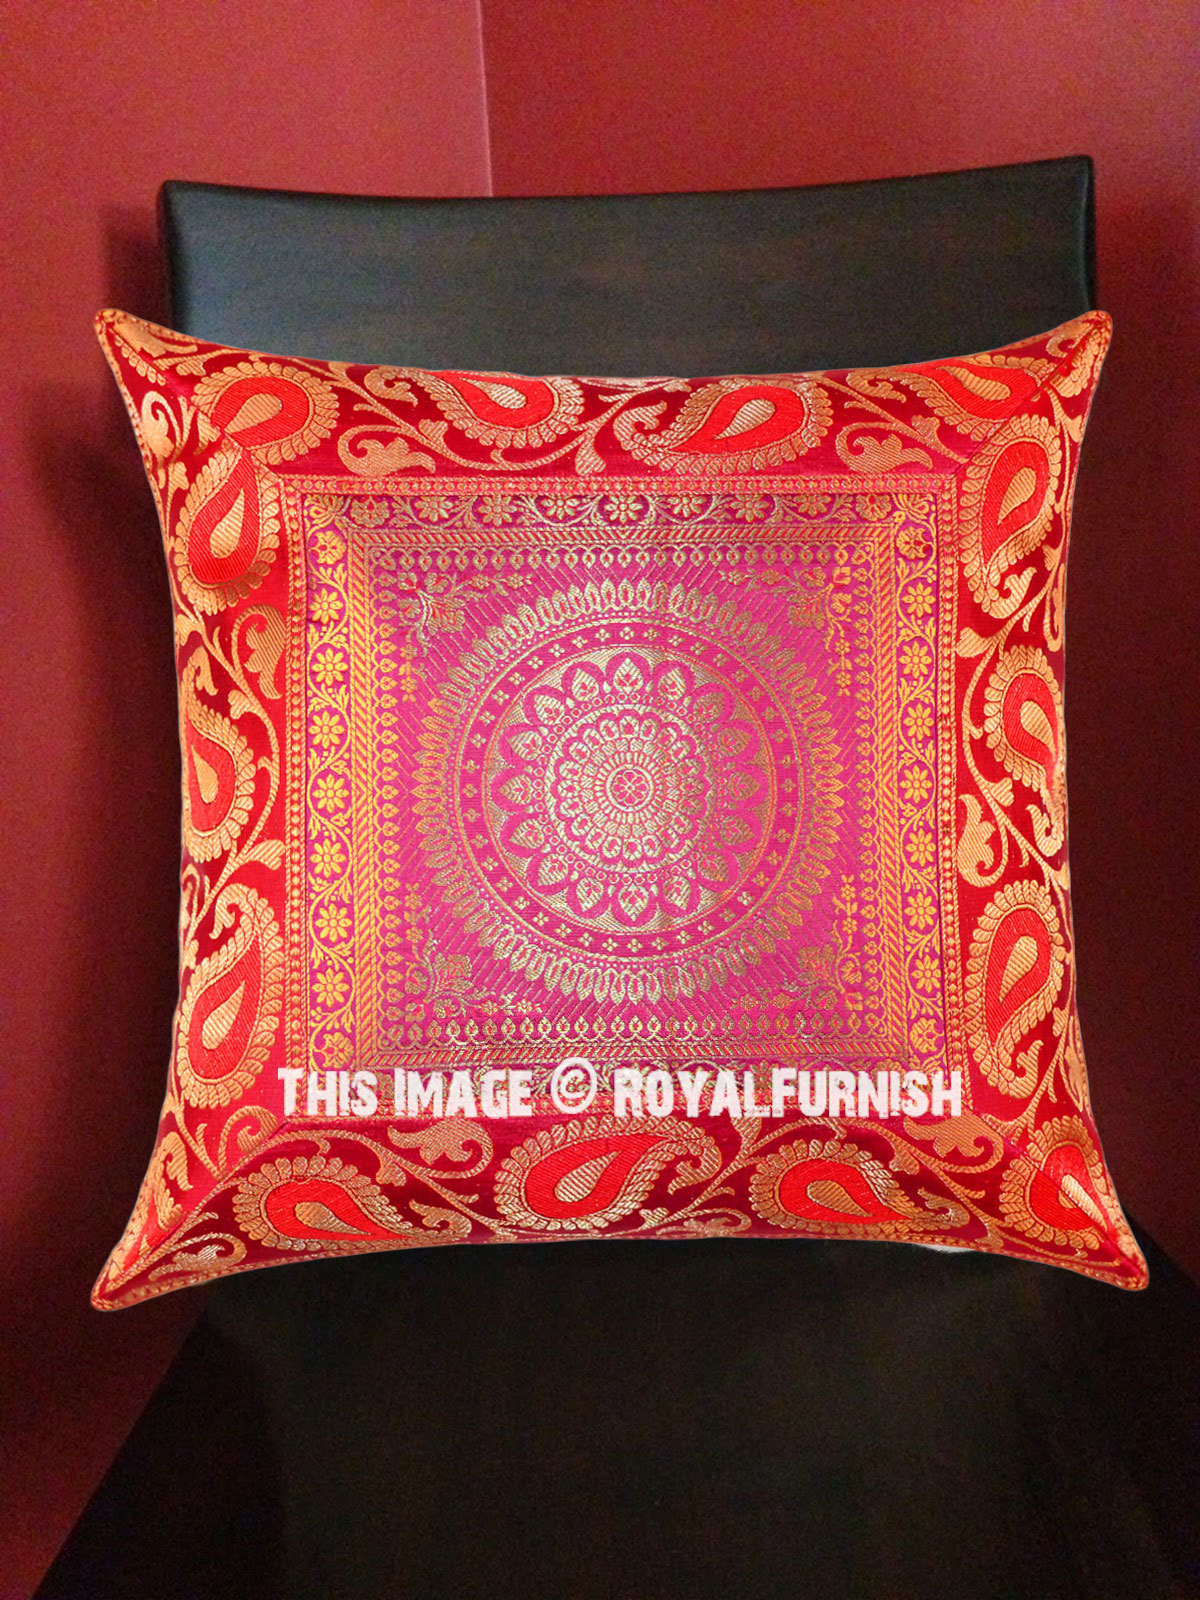 Pink Medallion Floral Circle Decorative Square Silk Pillow Sham Cover 16X16 Inch - RoyalFurnish.com